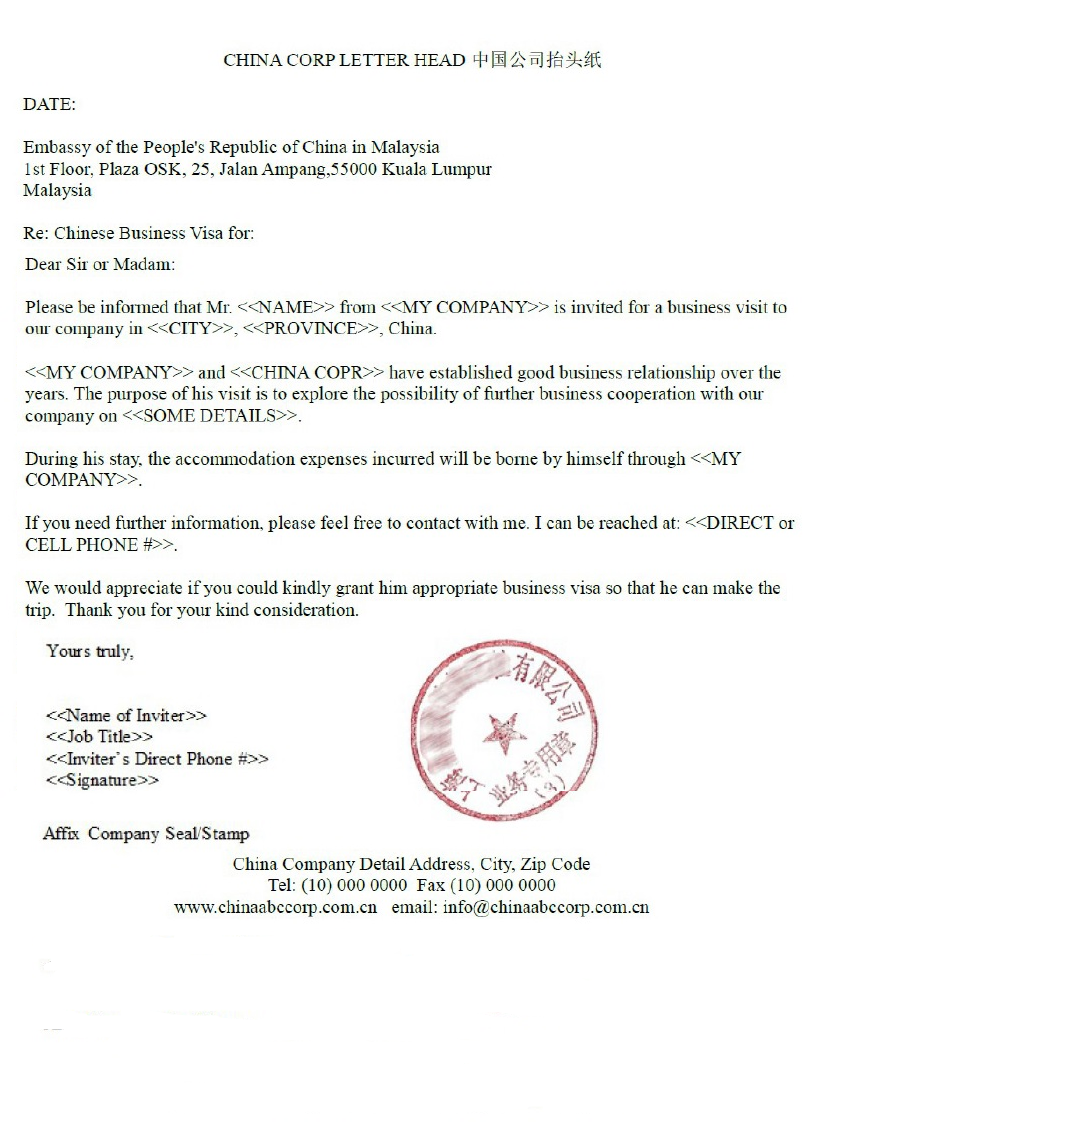 Sample invitation letter for business visa tripvisa click here to download stopboris Image collections